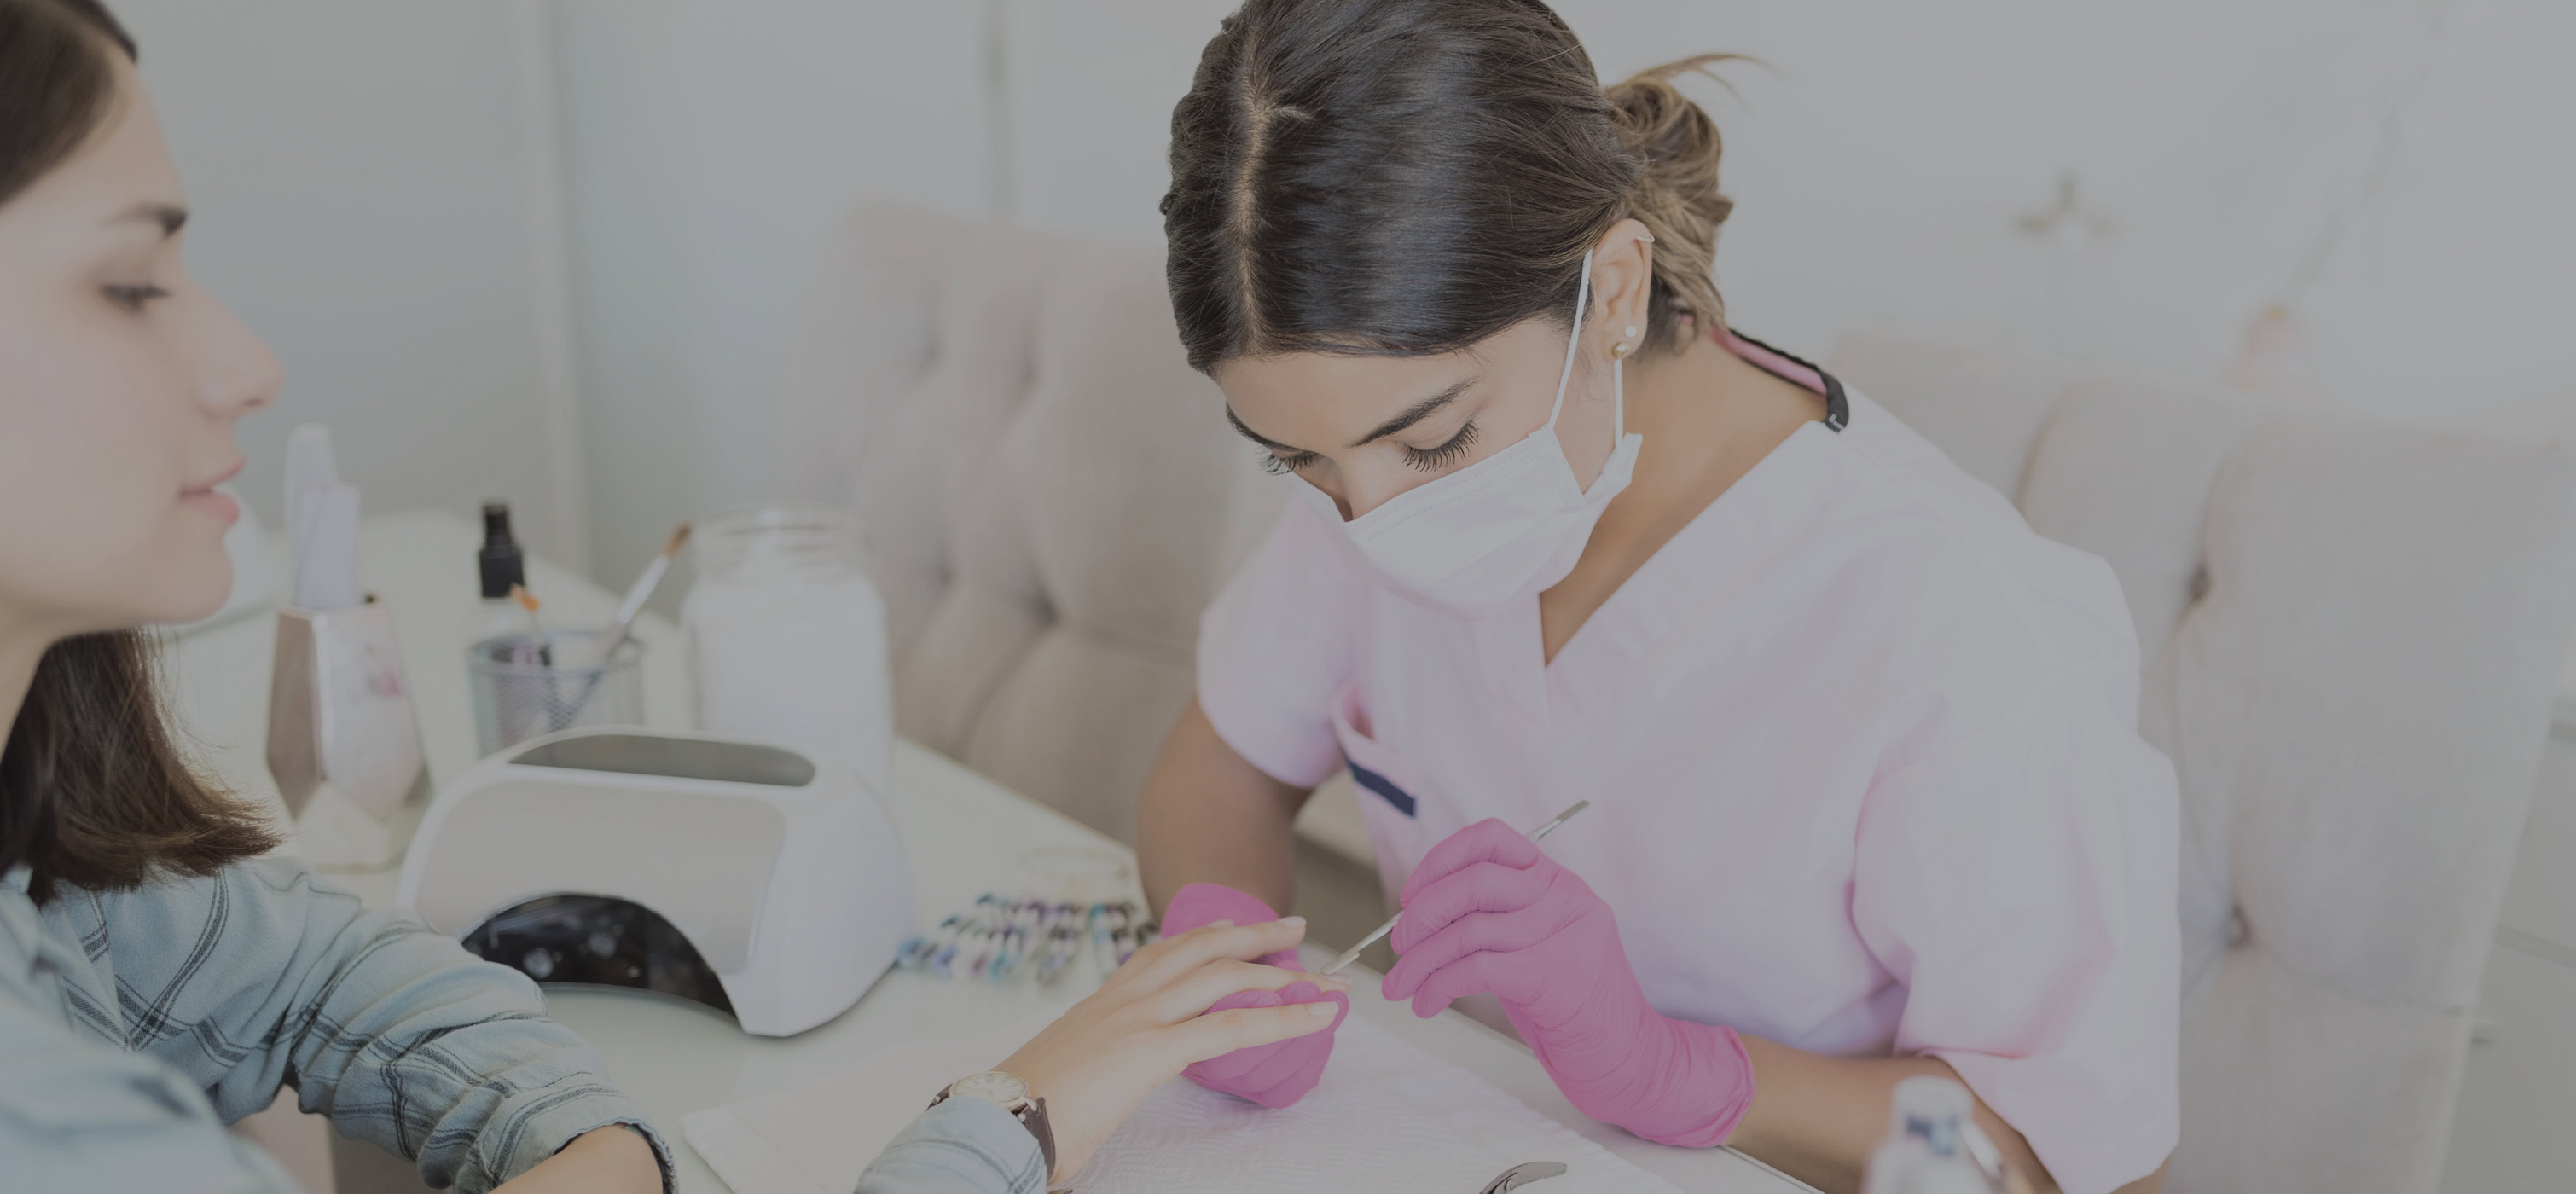 Woman sitting with a mask and gloves on working on another woman's nails who is sitting across from her.